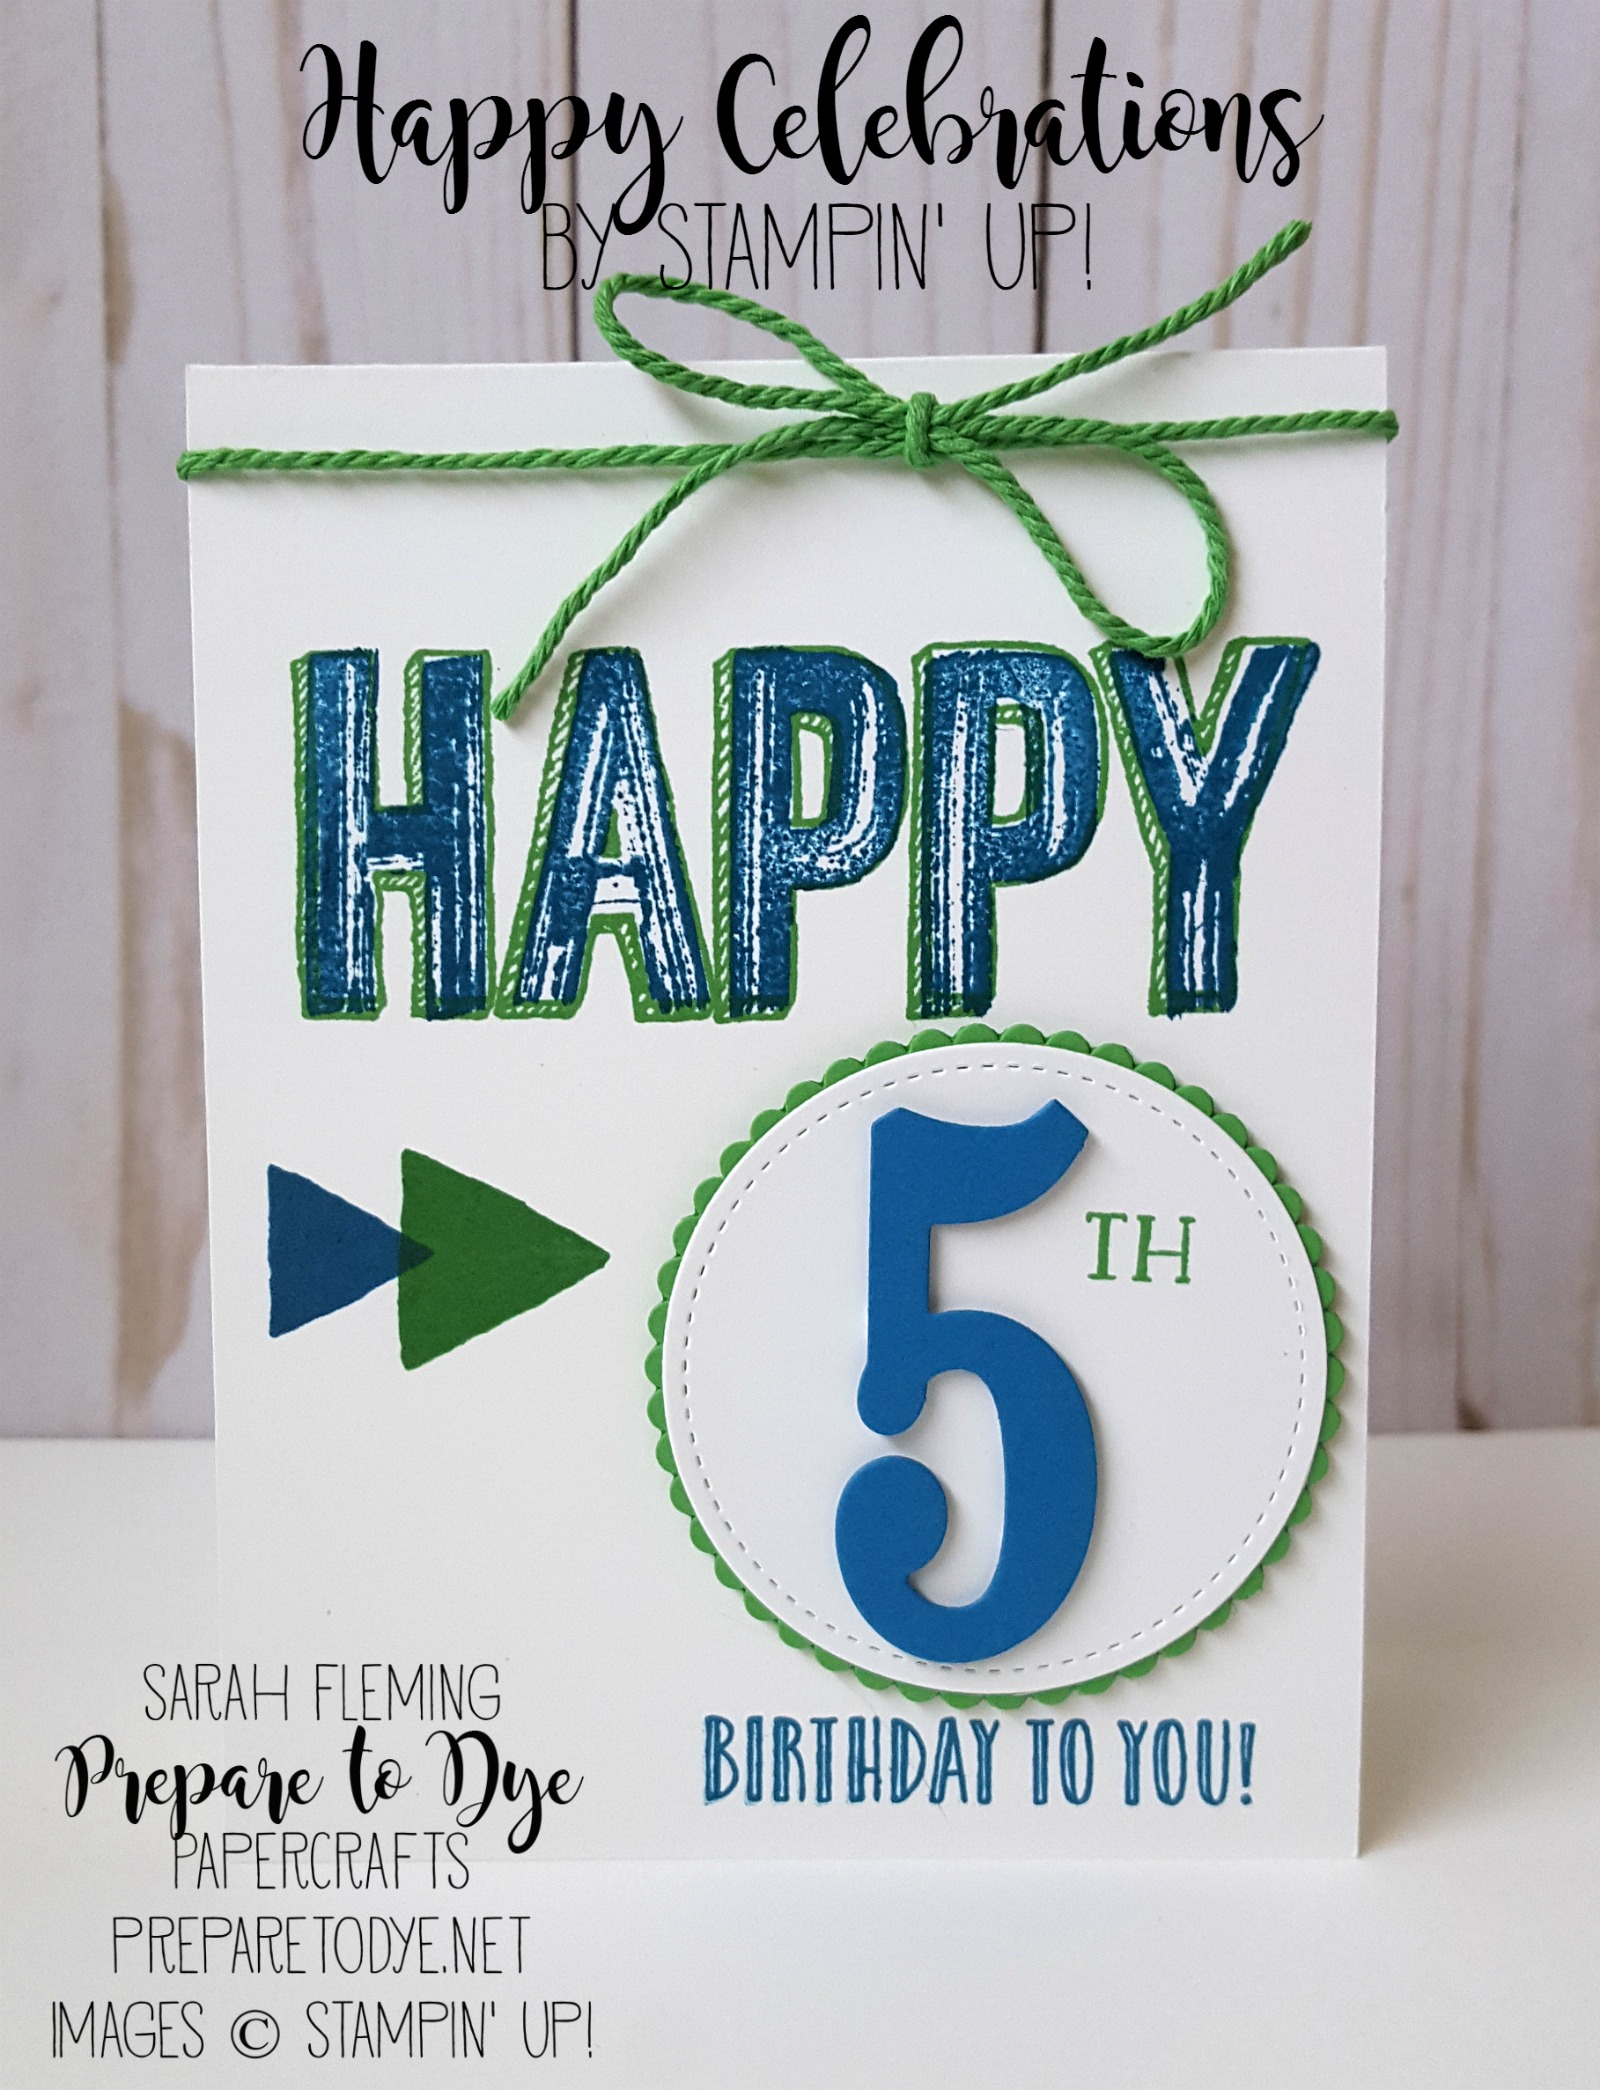 Stampin' Up! Happy Celebrations stamp set with Large Numbers framelits and Number of Years stamp set - handmade boy's birthday card - Sarah Fleming - Prepare to Dye Papercrafts